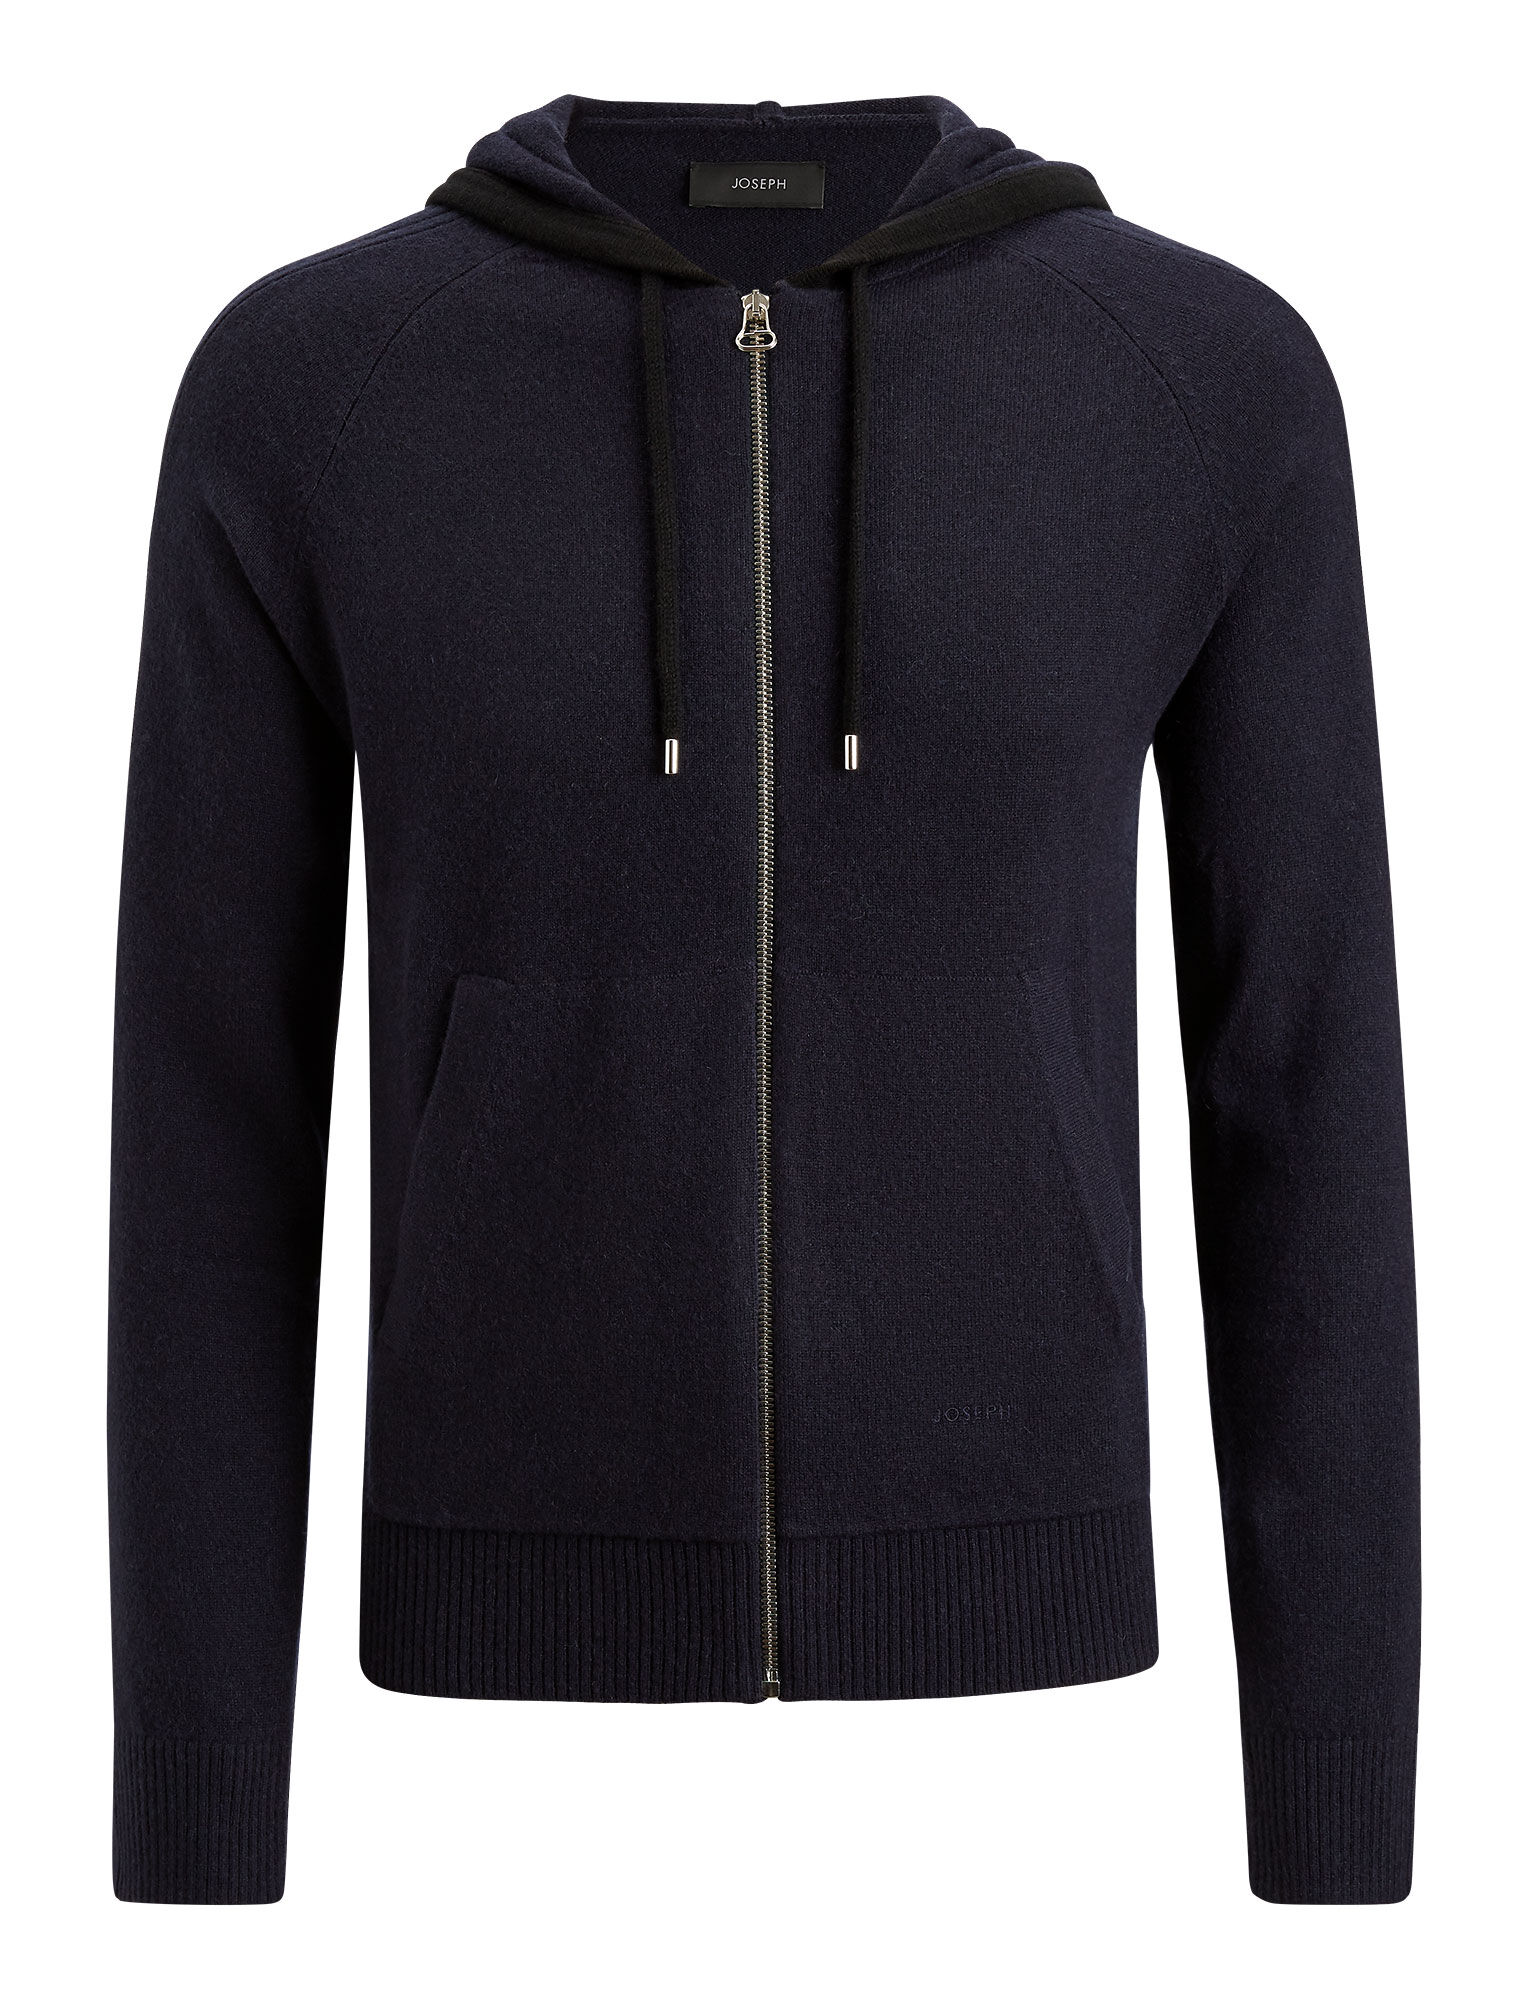 Joseph, Mongolian Cashmere Knit Hoodie, in NAVY